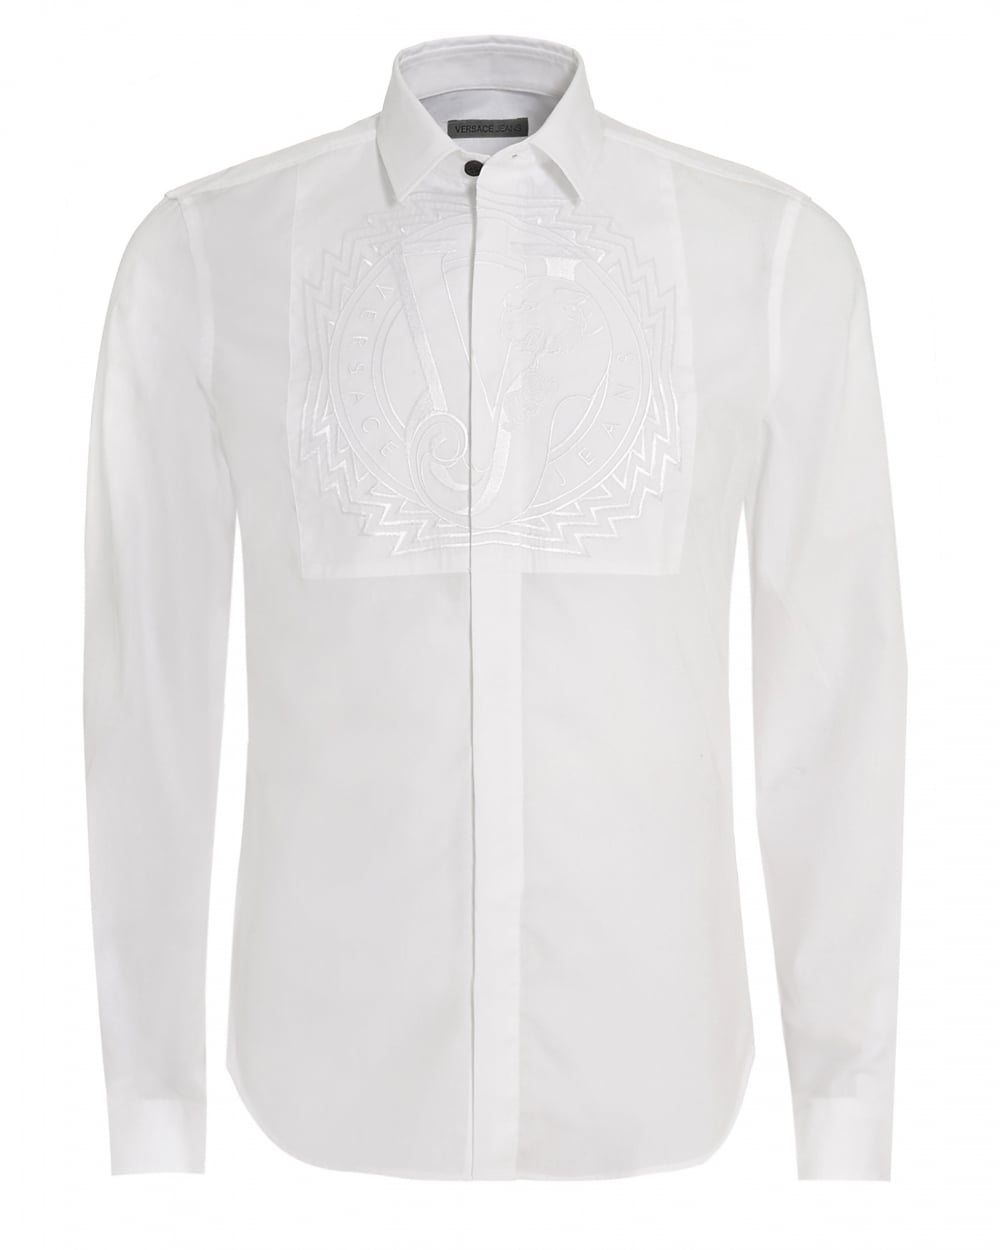 Best Men's White Oxford Shirts. The Oxford shirt is the best choice for those who wear shirts on a regular basis. It's a step up from the dress shirt as it comes with a formal design, button-down collar and it's acceptable to wear at casual events too.